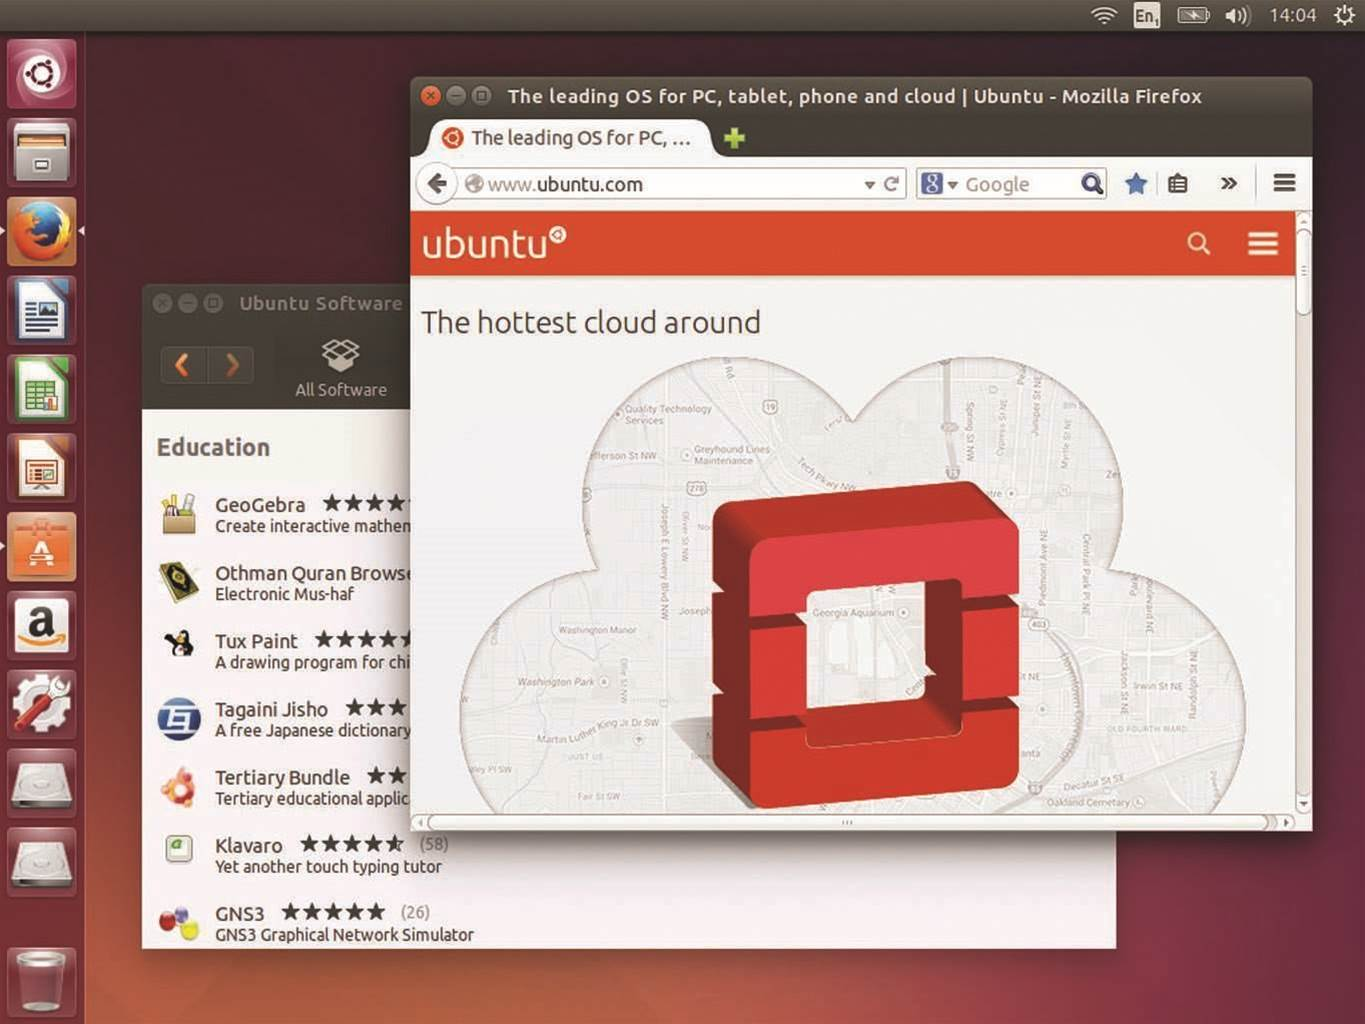 Review: Ubuntu 14.04 LTS